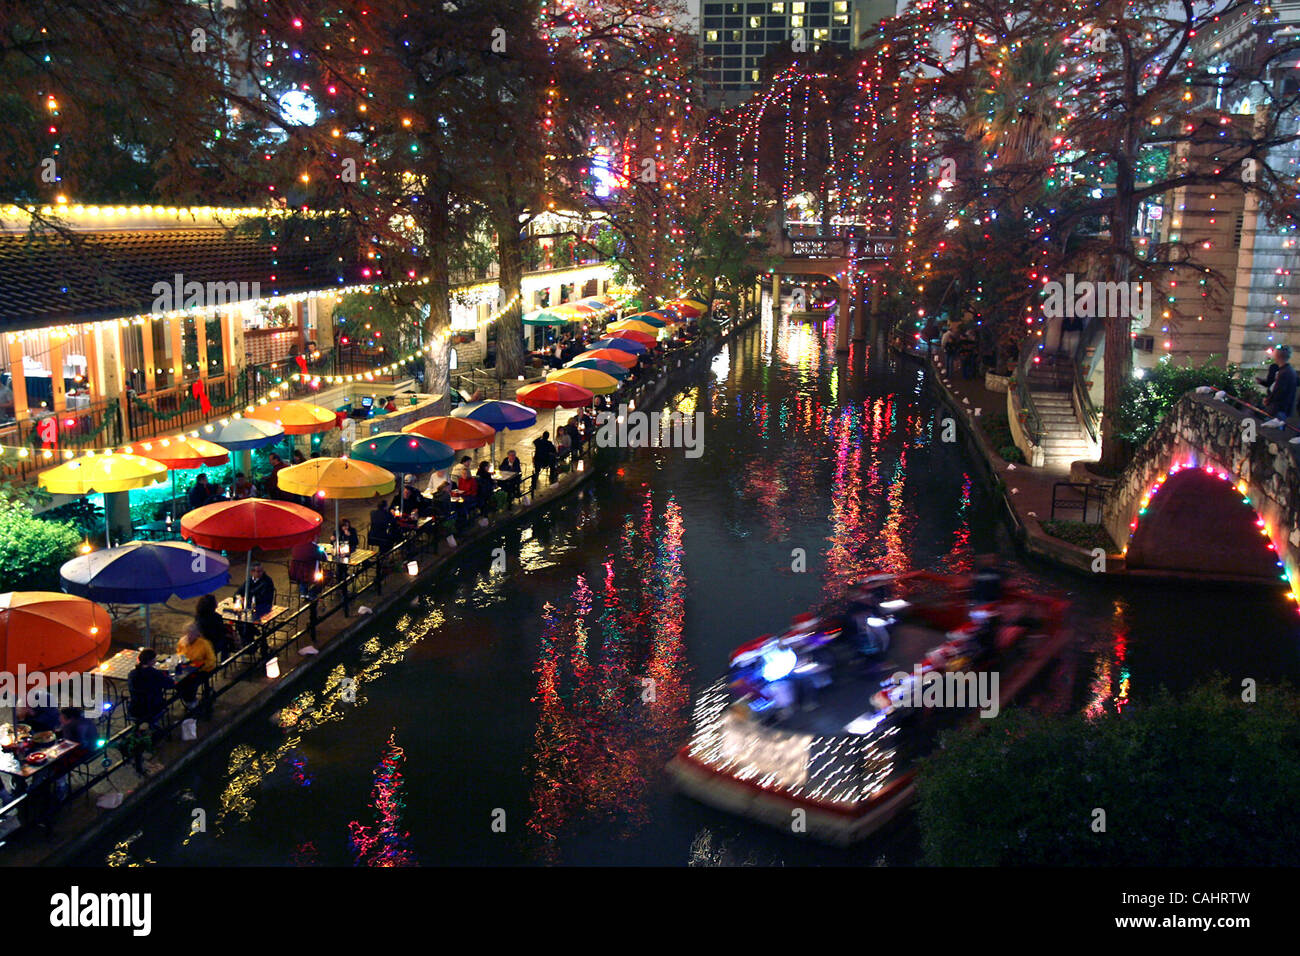 metro rivergoers view the christmas lights on the riverwalk while riding in a barge near the